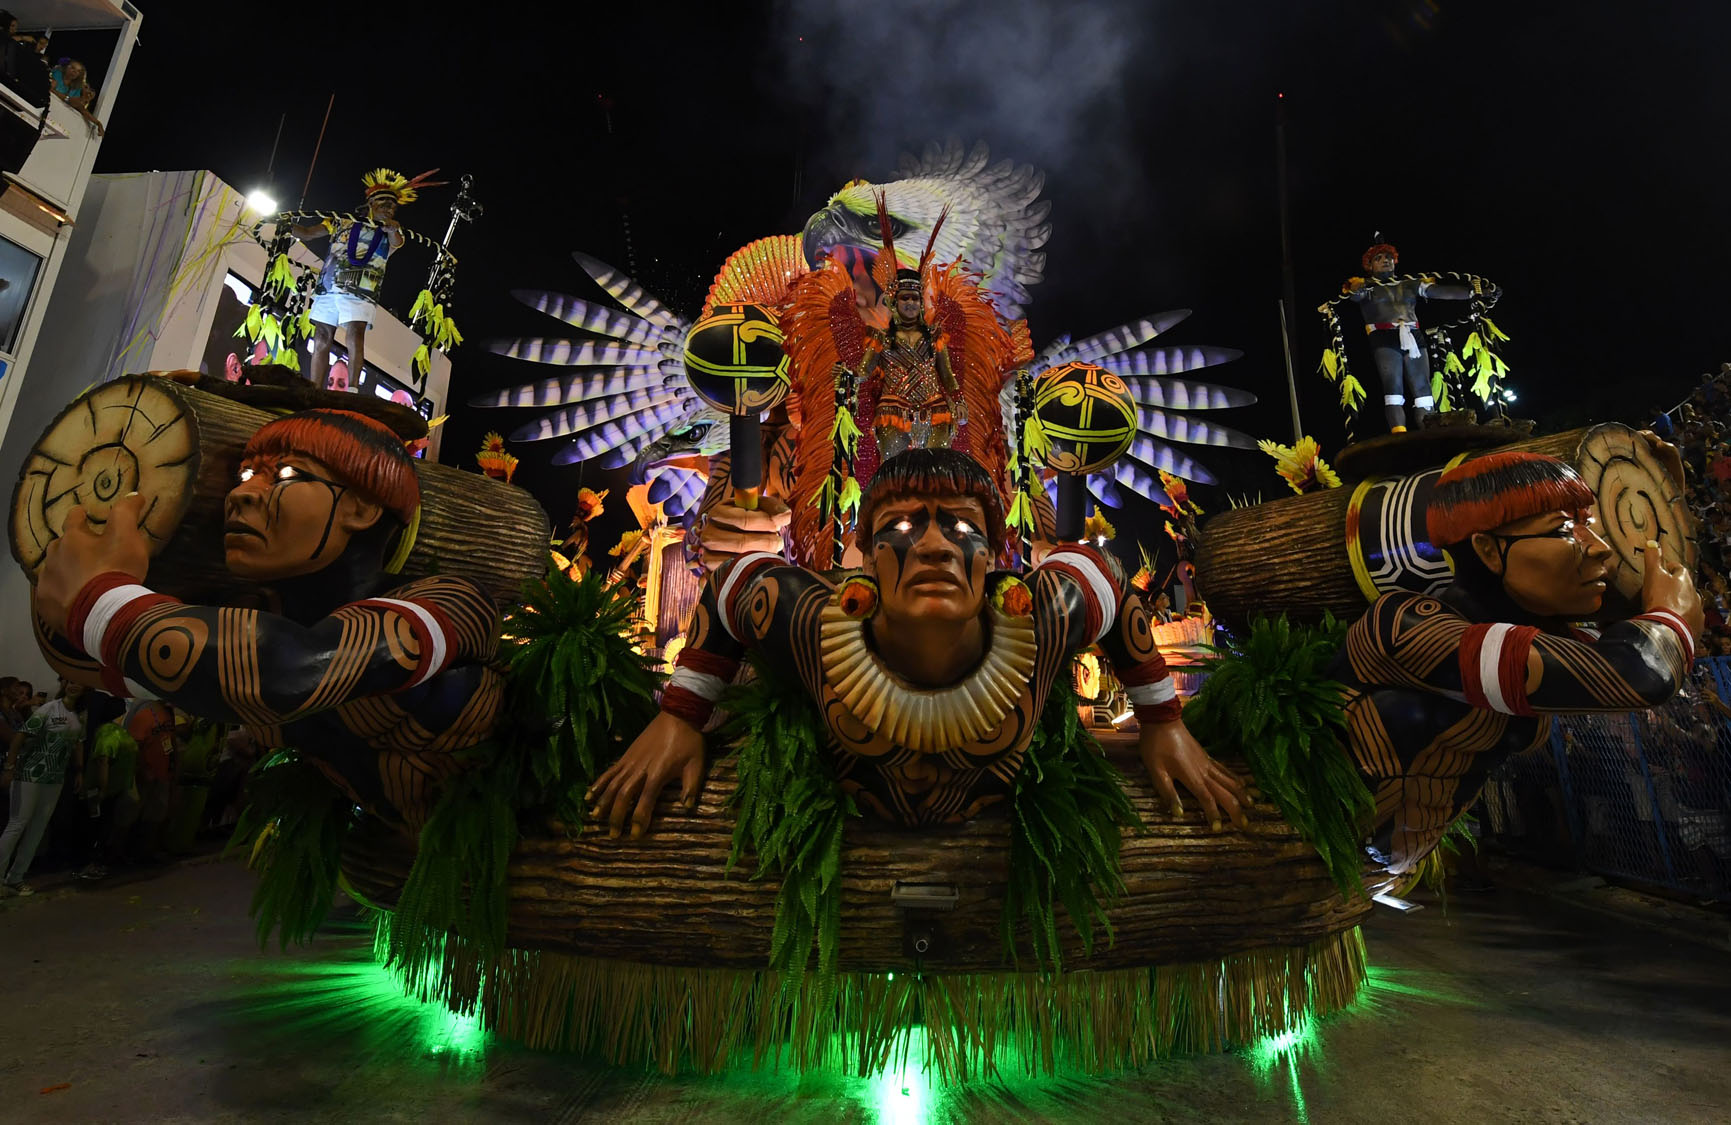 carnival in brazil Carnival in brazil is the festival of festivals rich in vibrant music, exotic costumes, dancing, drinking, the brazil carnaval is the world's largest celebration.